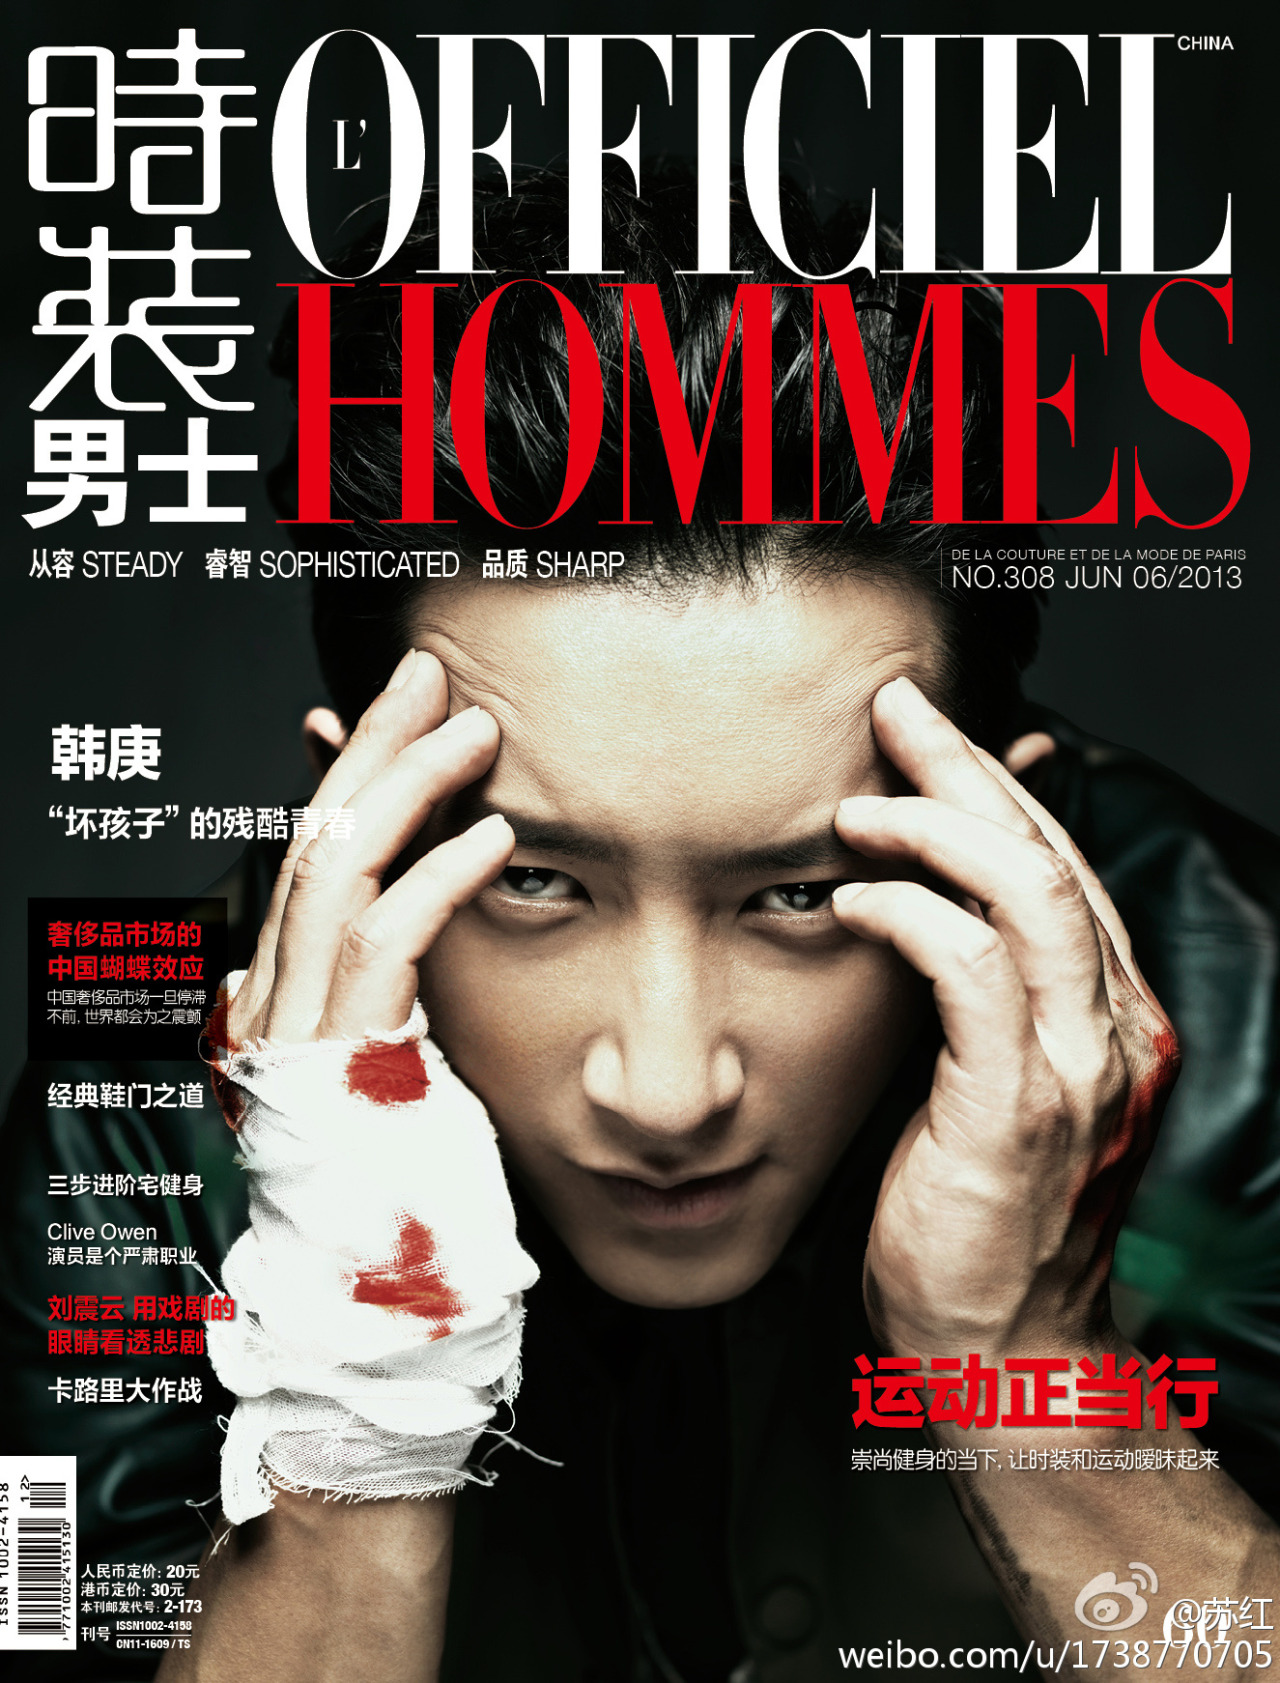 (June 2013) L'Officiel Hommes magazine | cr: 苏红